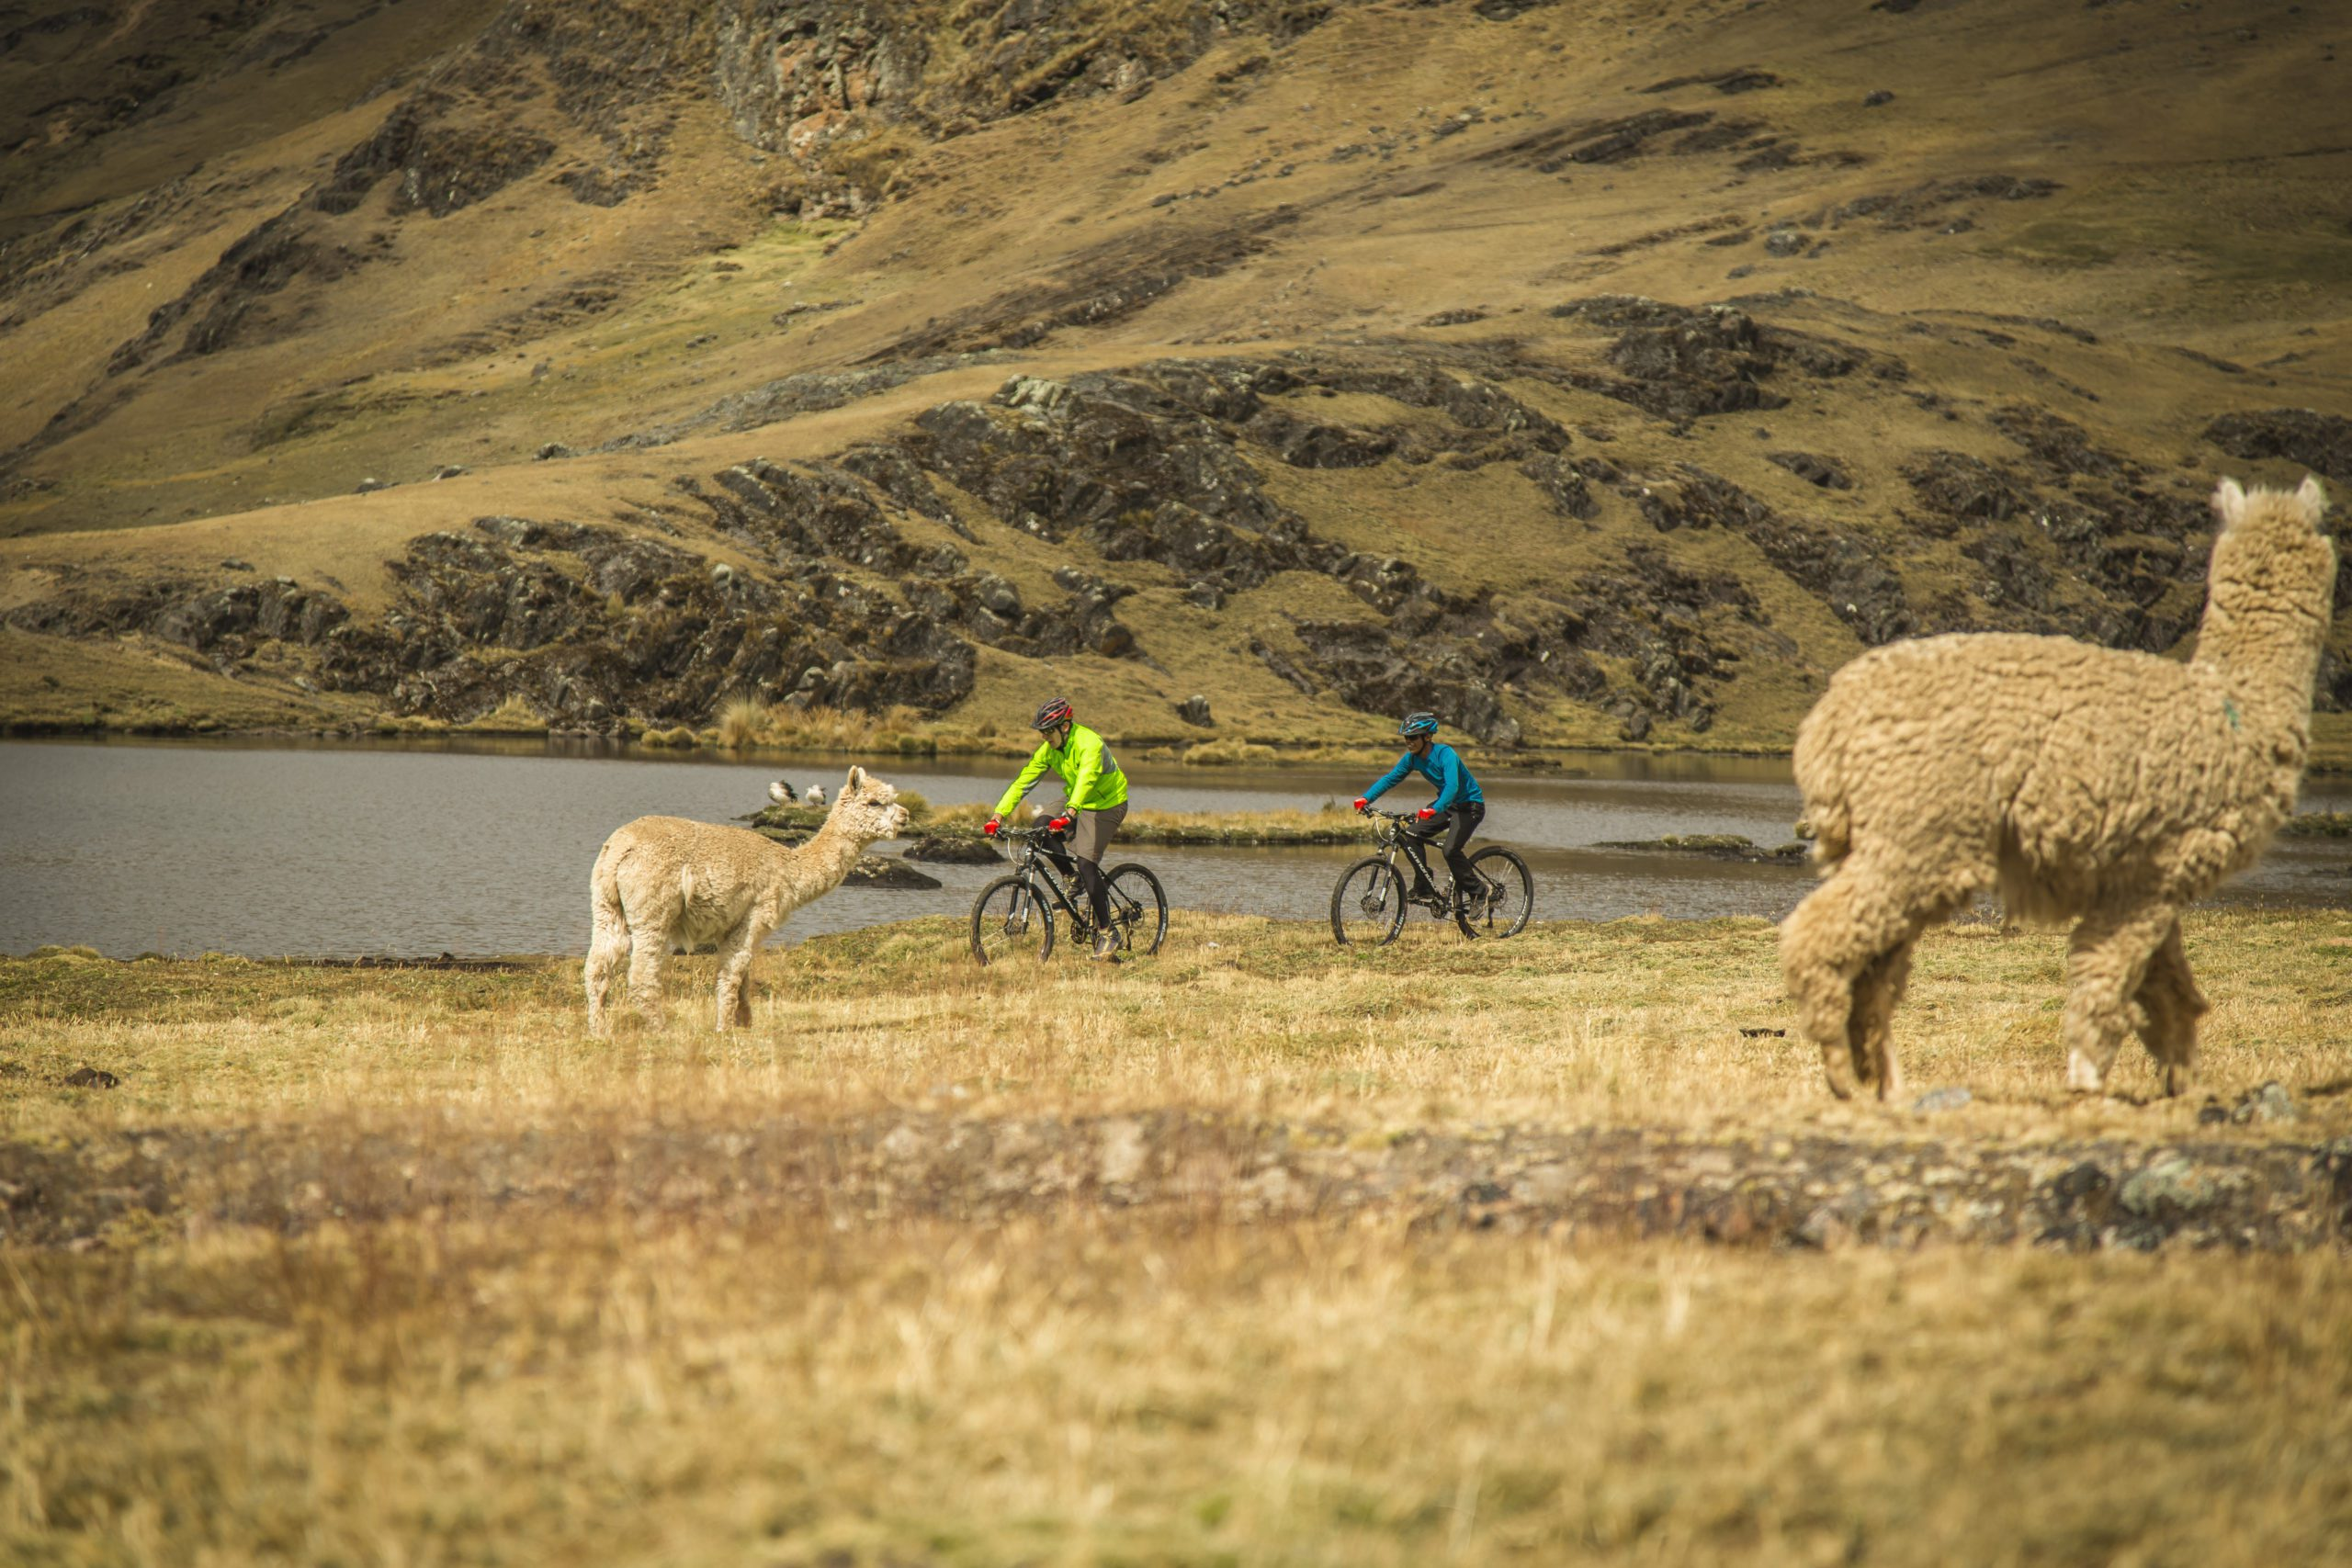 Peru biking through the countryside with alpacas